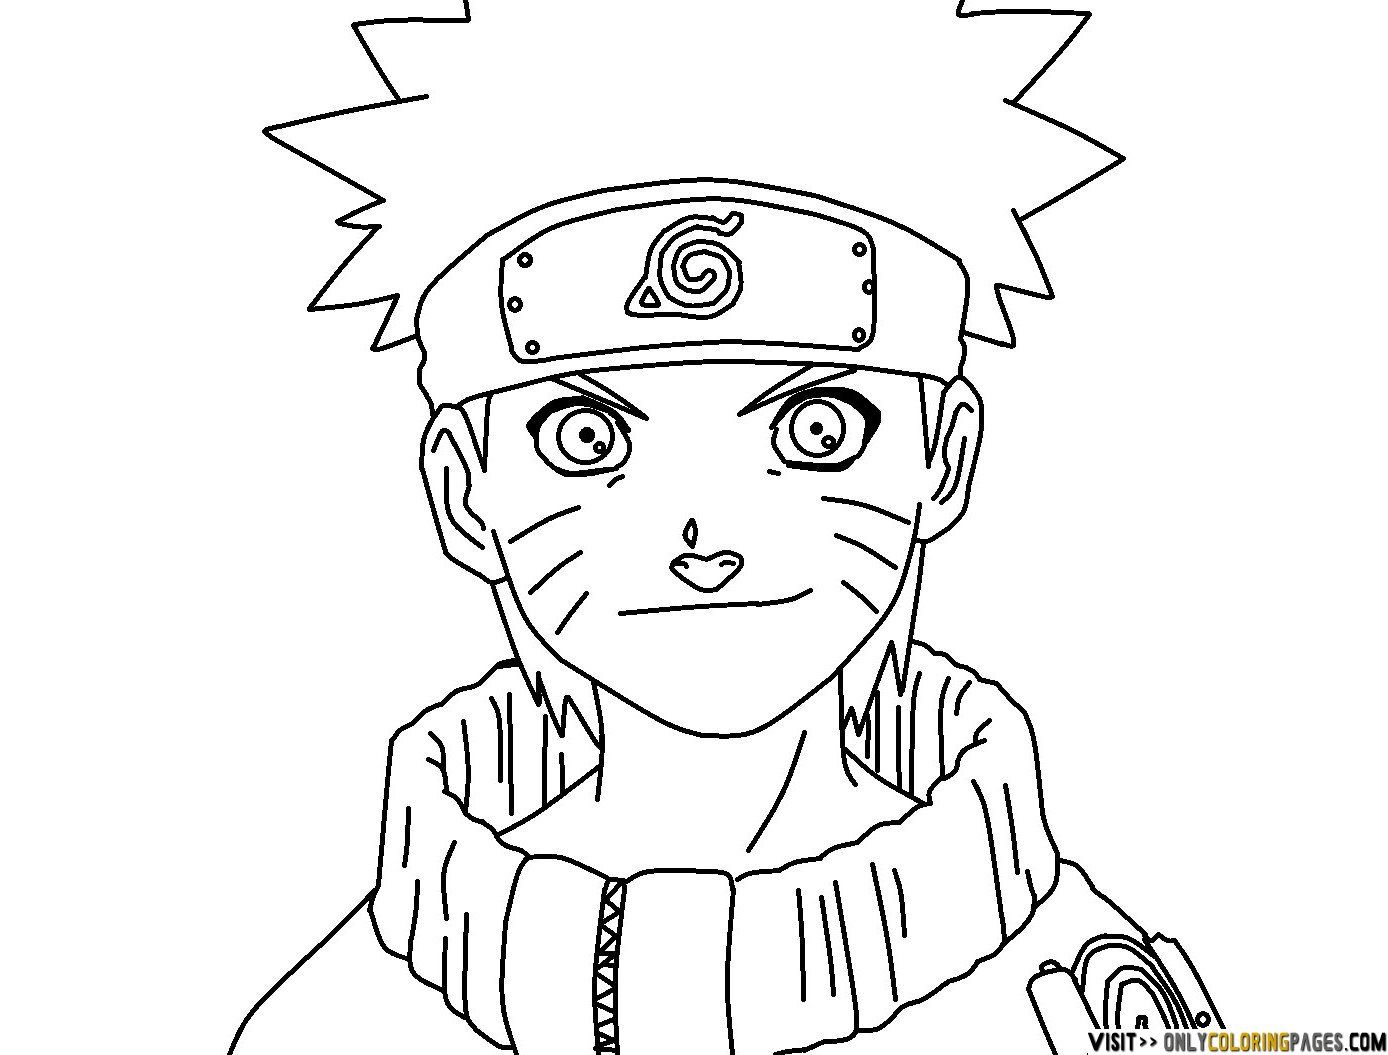 Naruto Coloring Pages Only Coloring Pages Cute Coloring Pages Coloring Pages Coloring Pages Inspirational